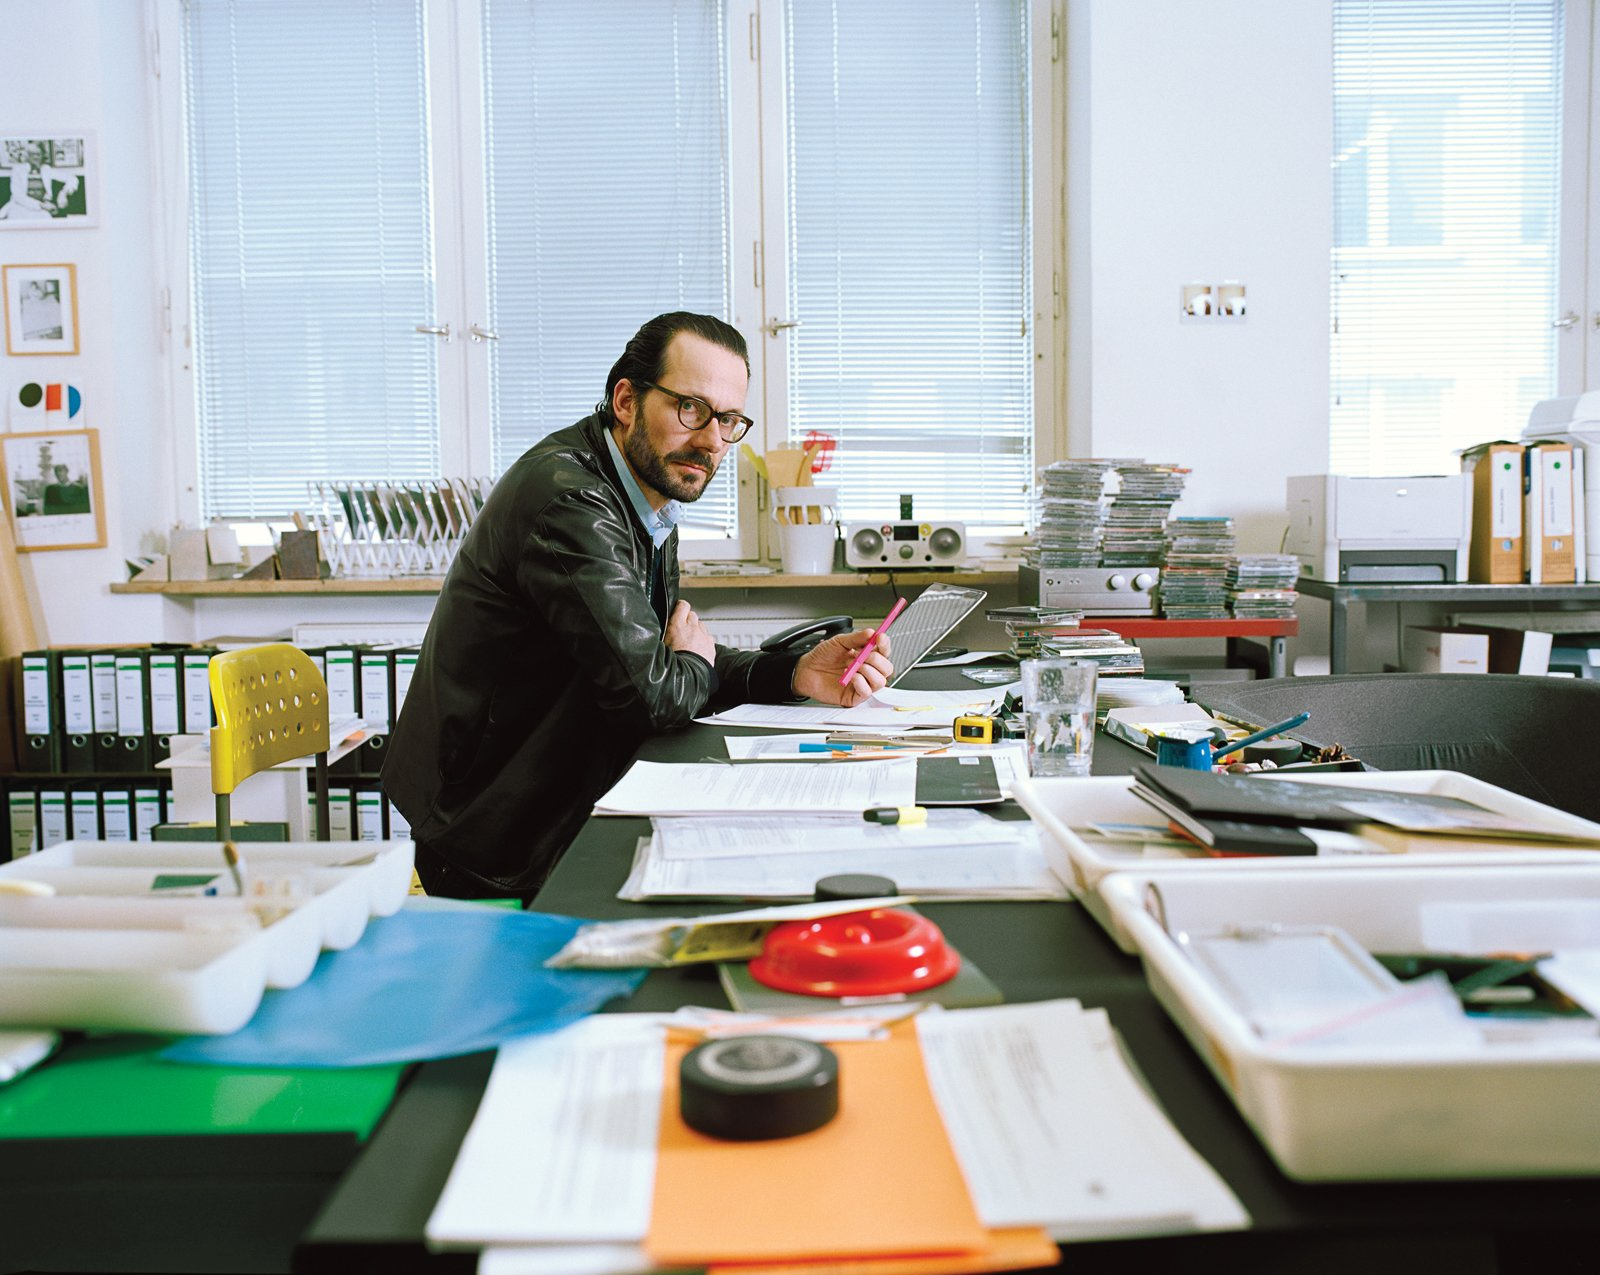 Industrial designer Konstantin Grcic in his Munich studio. Photo by Oliver Mark.  Photo 1 of 26 in Industrial Designer Focus: Konstantin Grcic